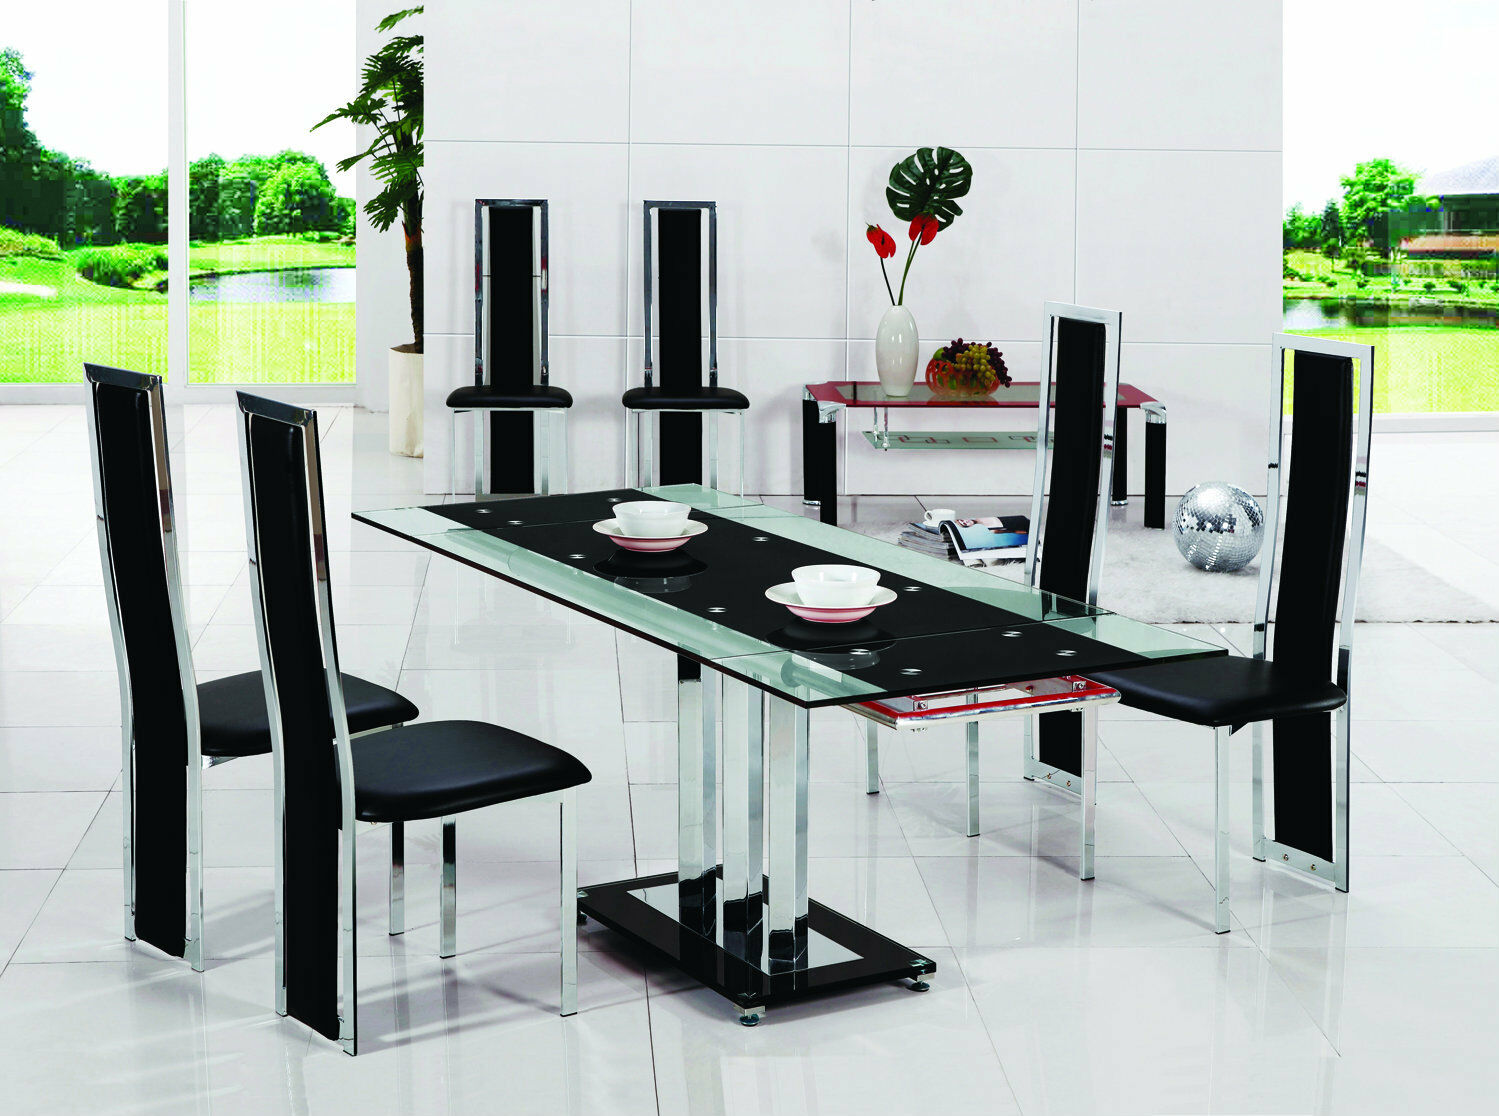 pavia extending glass chrome dining room table 6 chairs set furniture 601 816. Black Bedroom Furniture Sets. Home Design Ideas